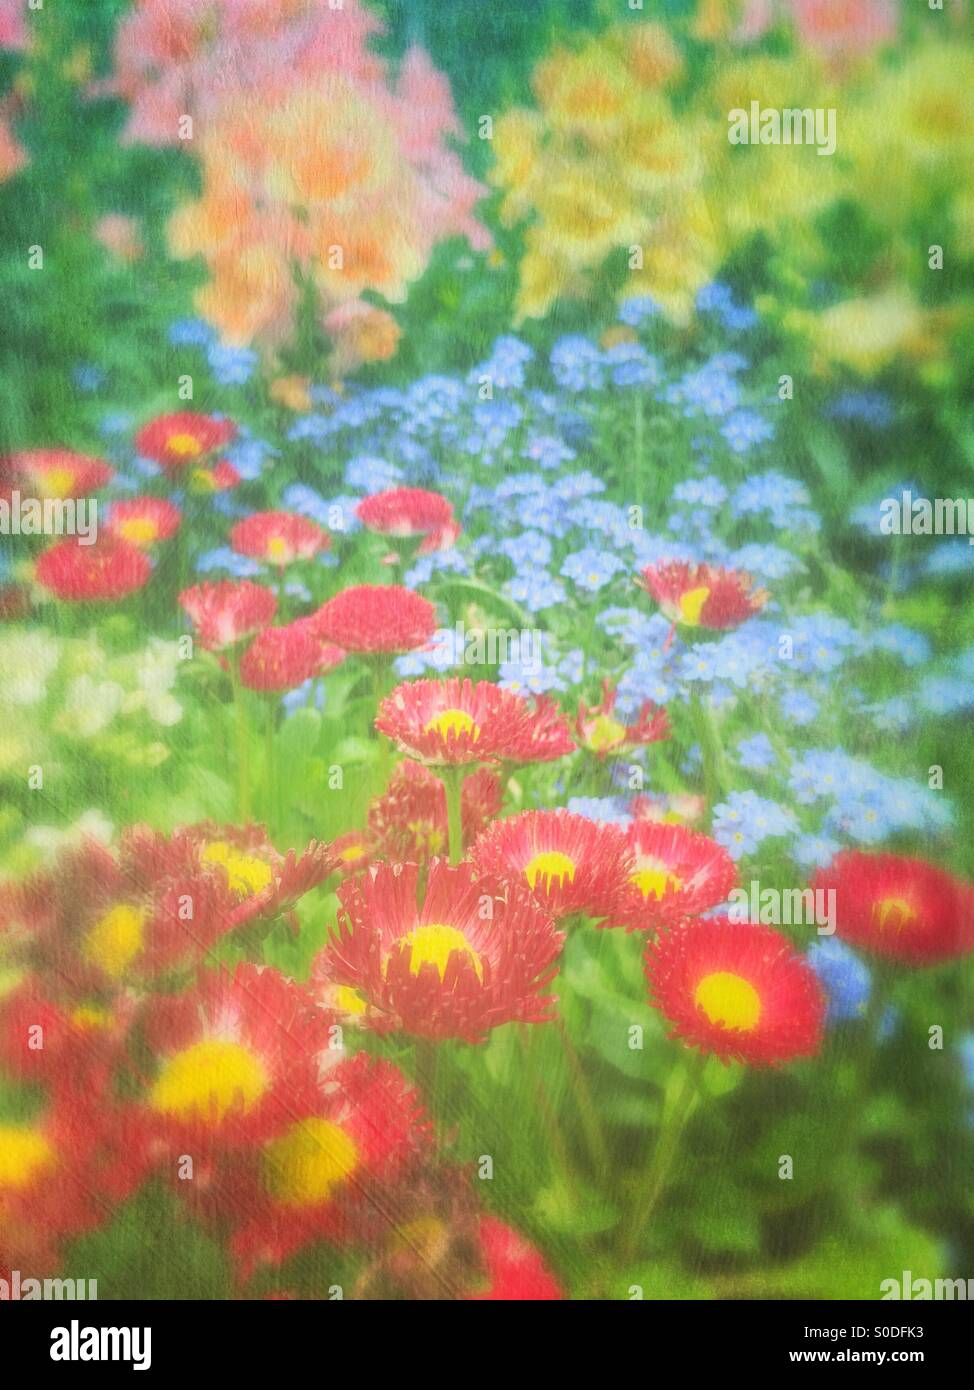 Spring flower garden with red daisies, blue forget-me-nots and yellow, pink and peach snapdragons. Vintage painterly Stock Photo